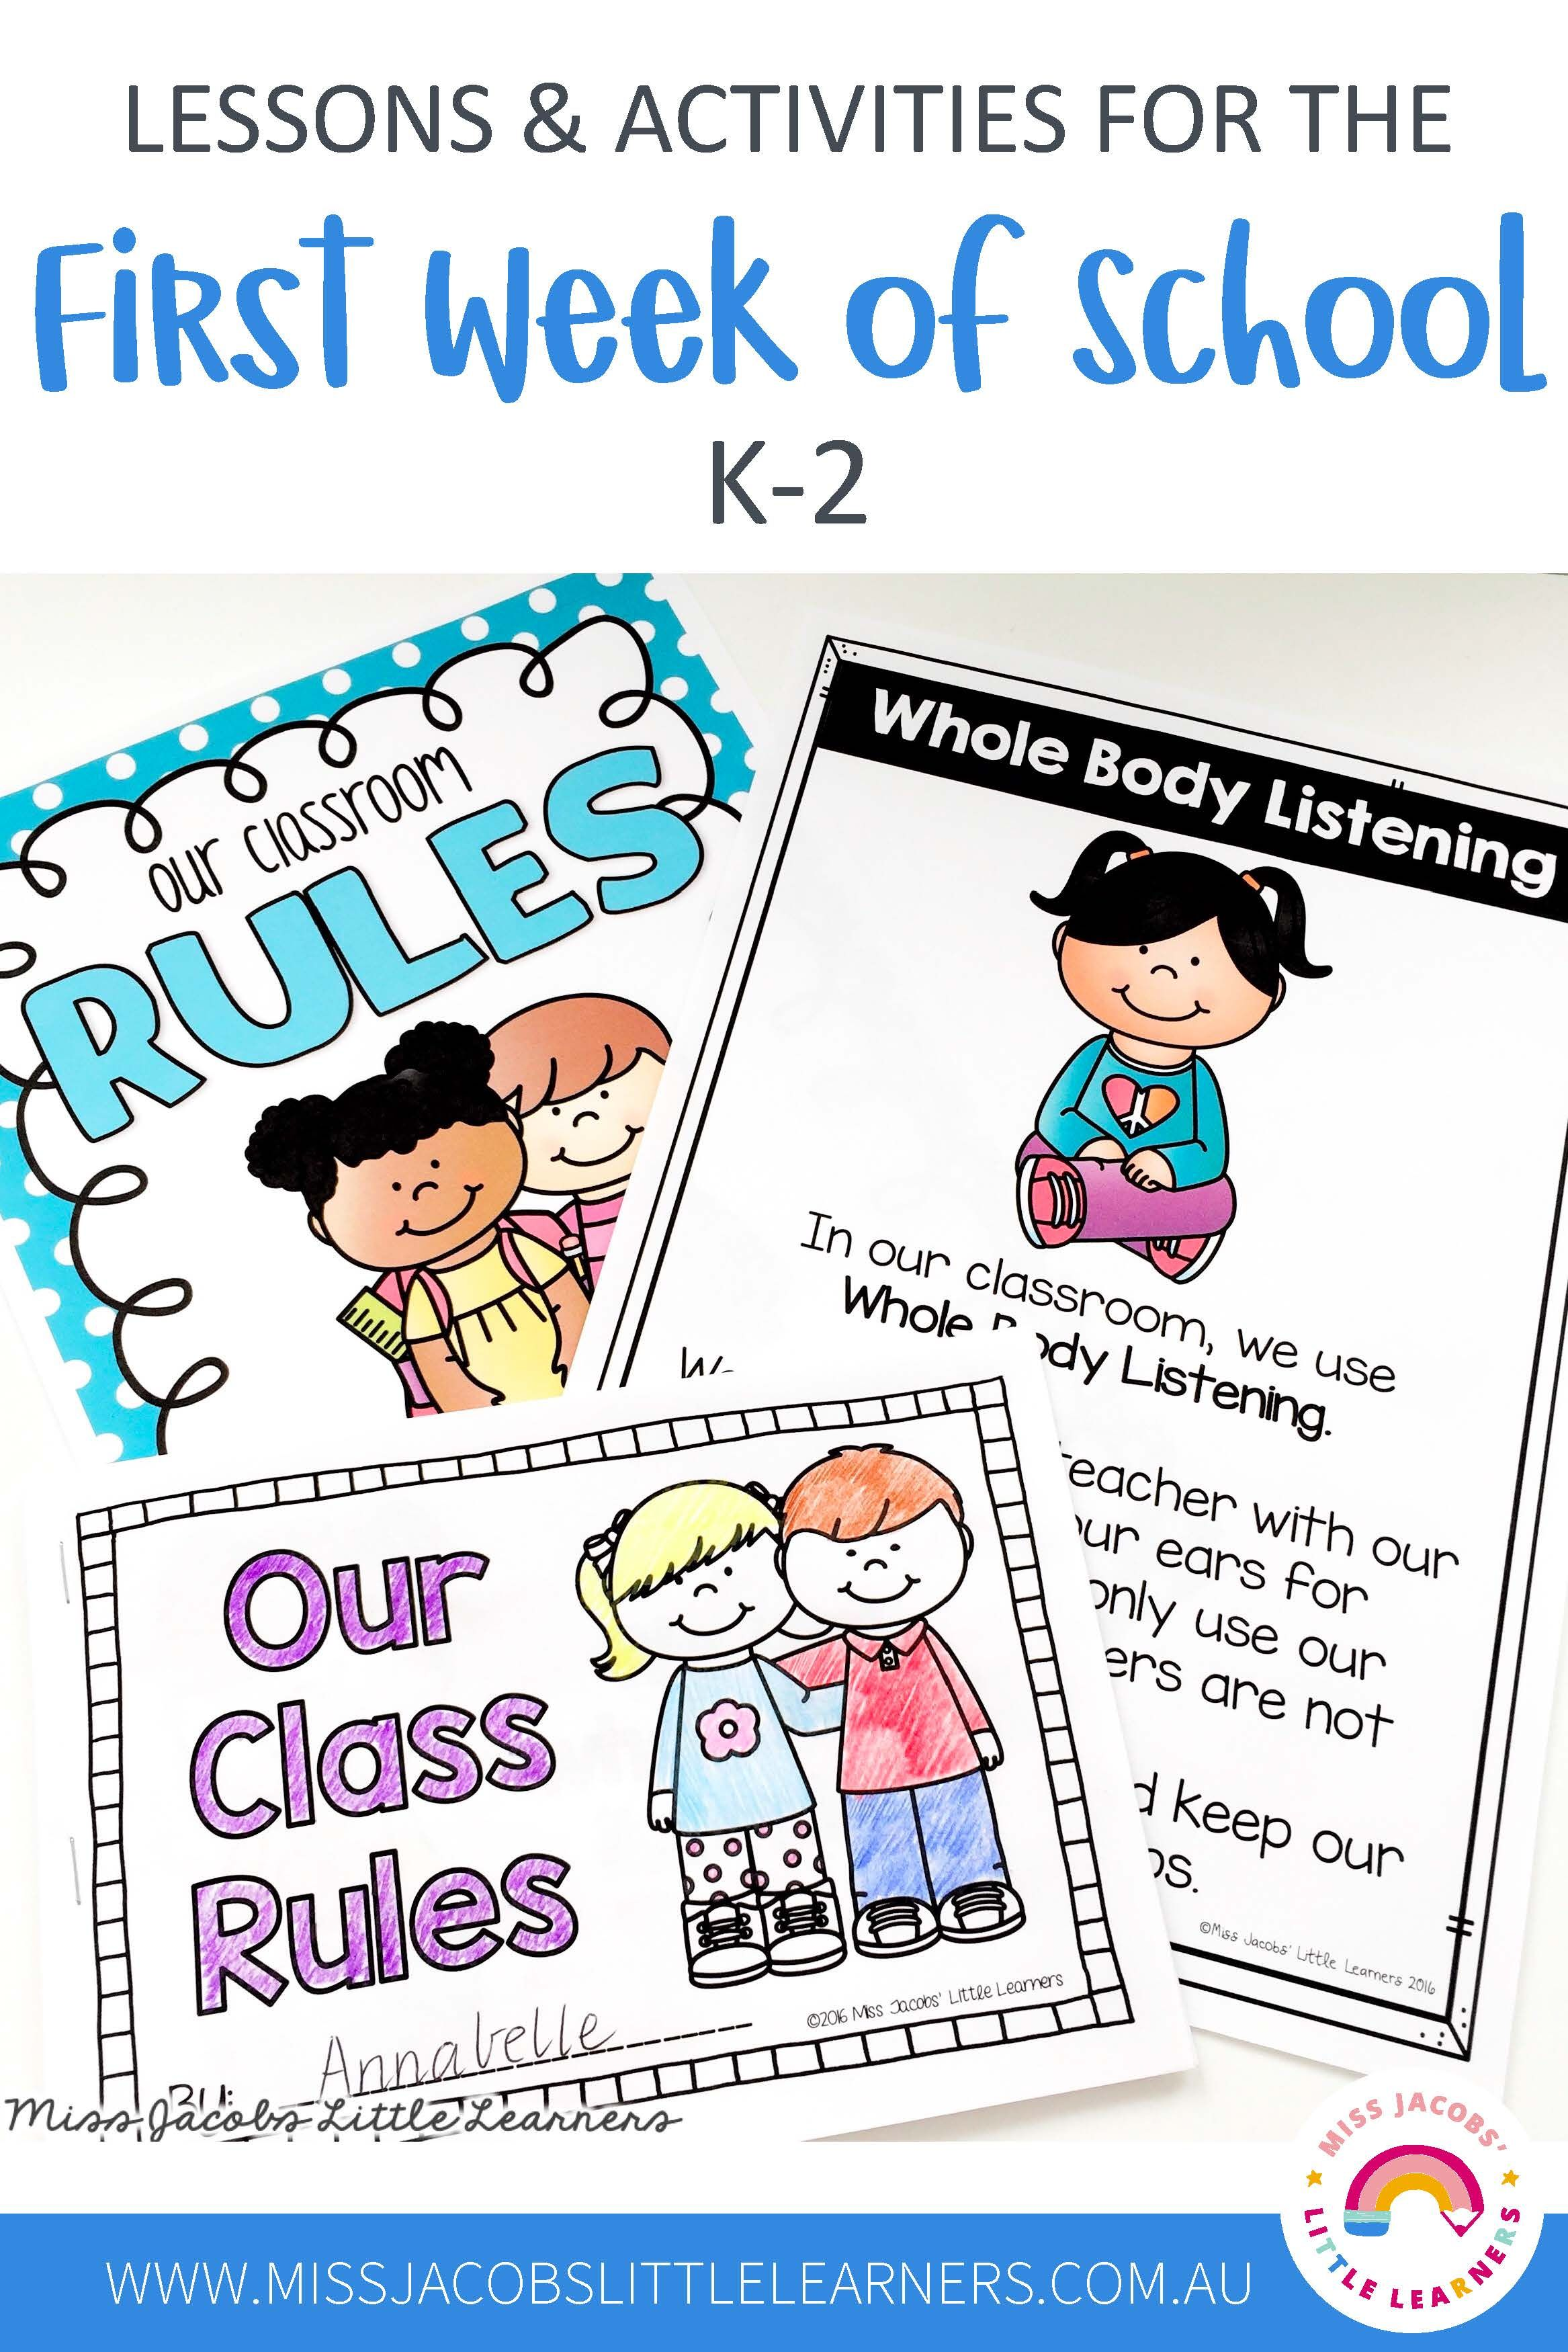 First Week Back To School Lesson Ideas And Activities In 2020 School Lessons First Day Of School Classroom Rules